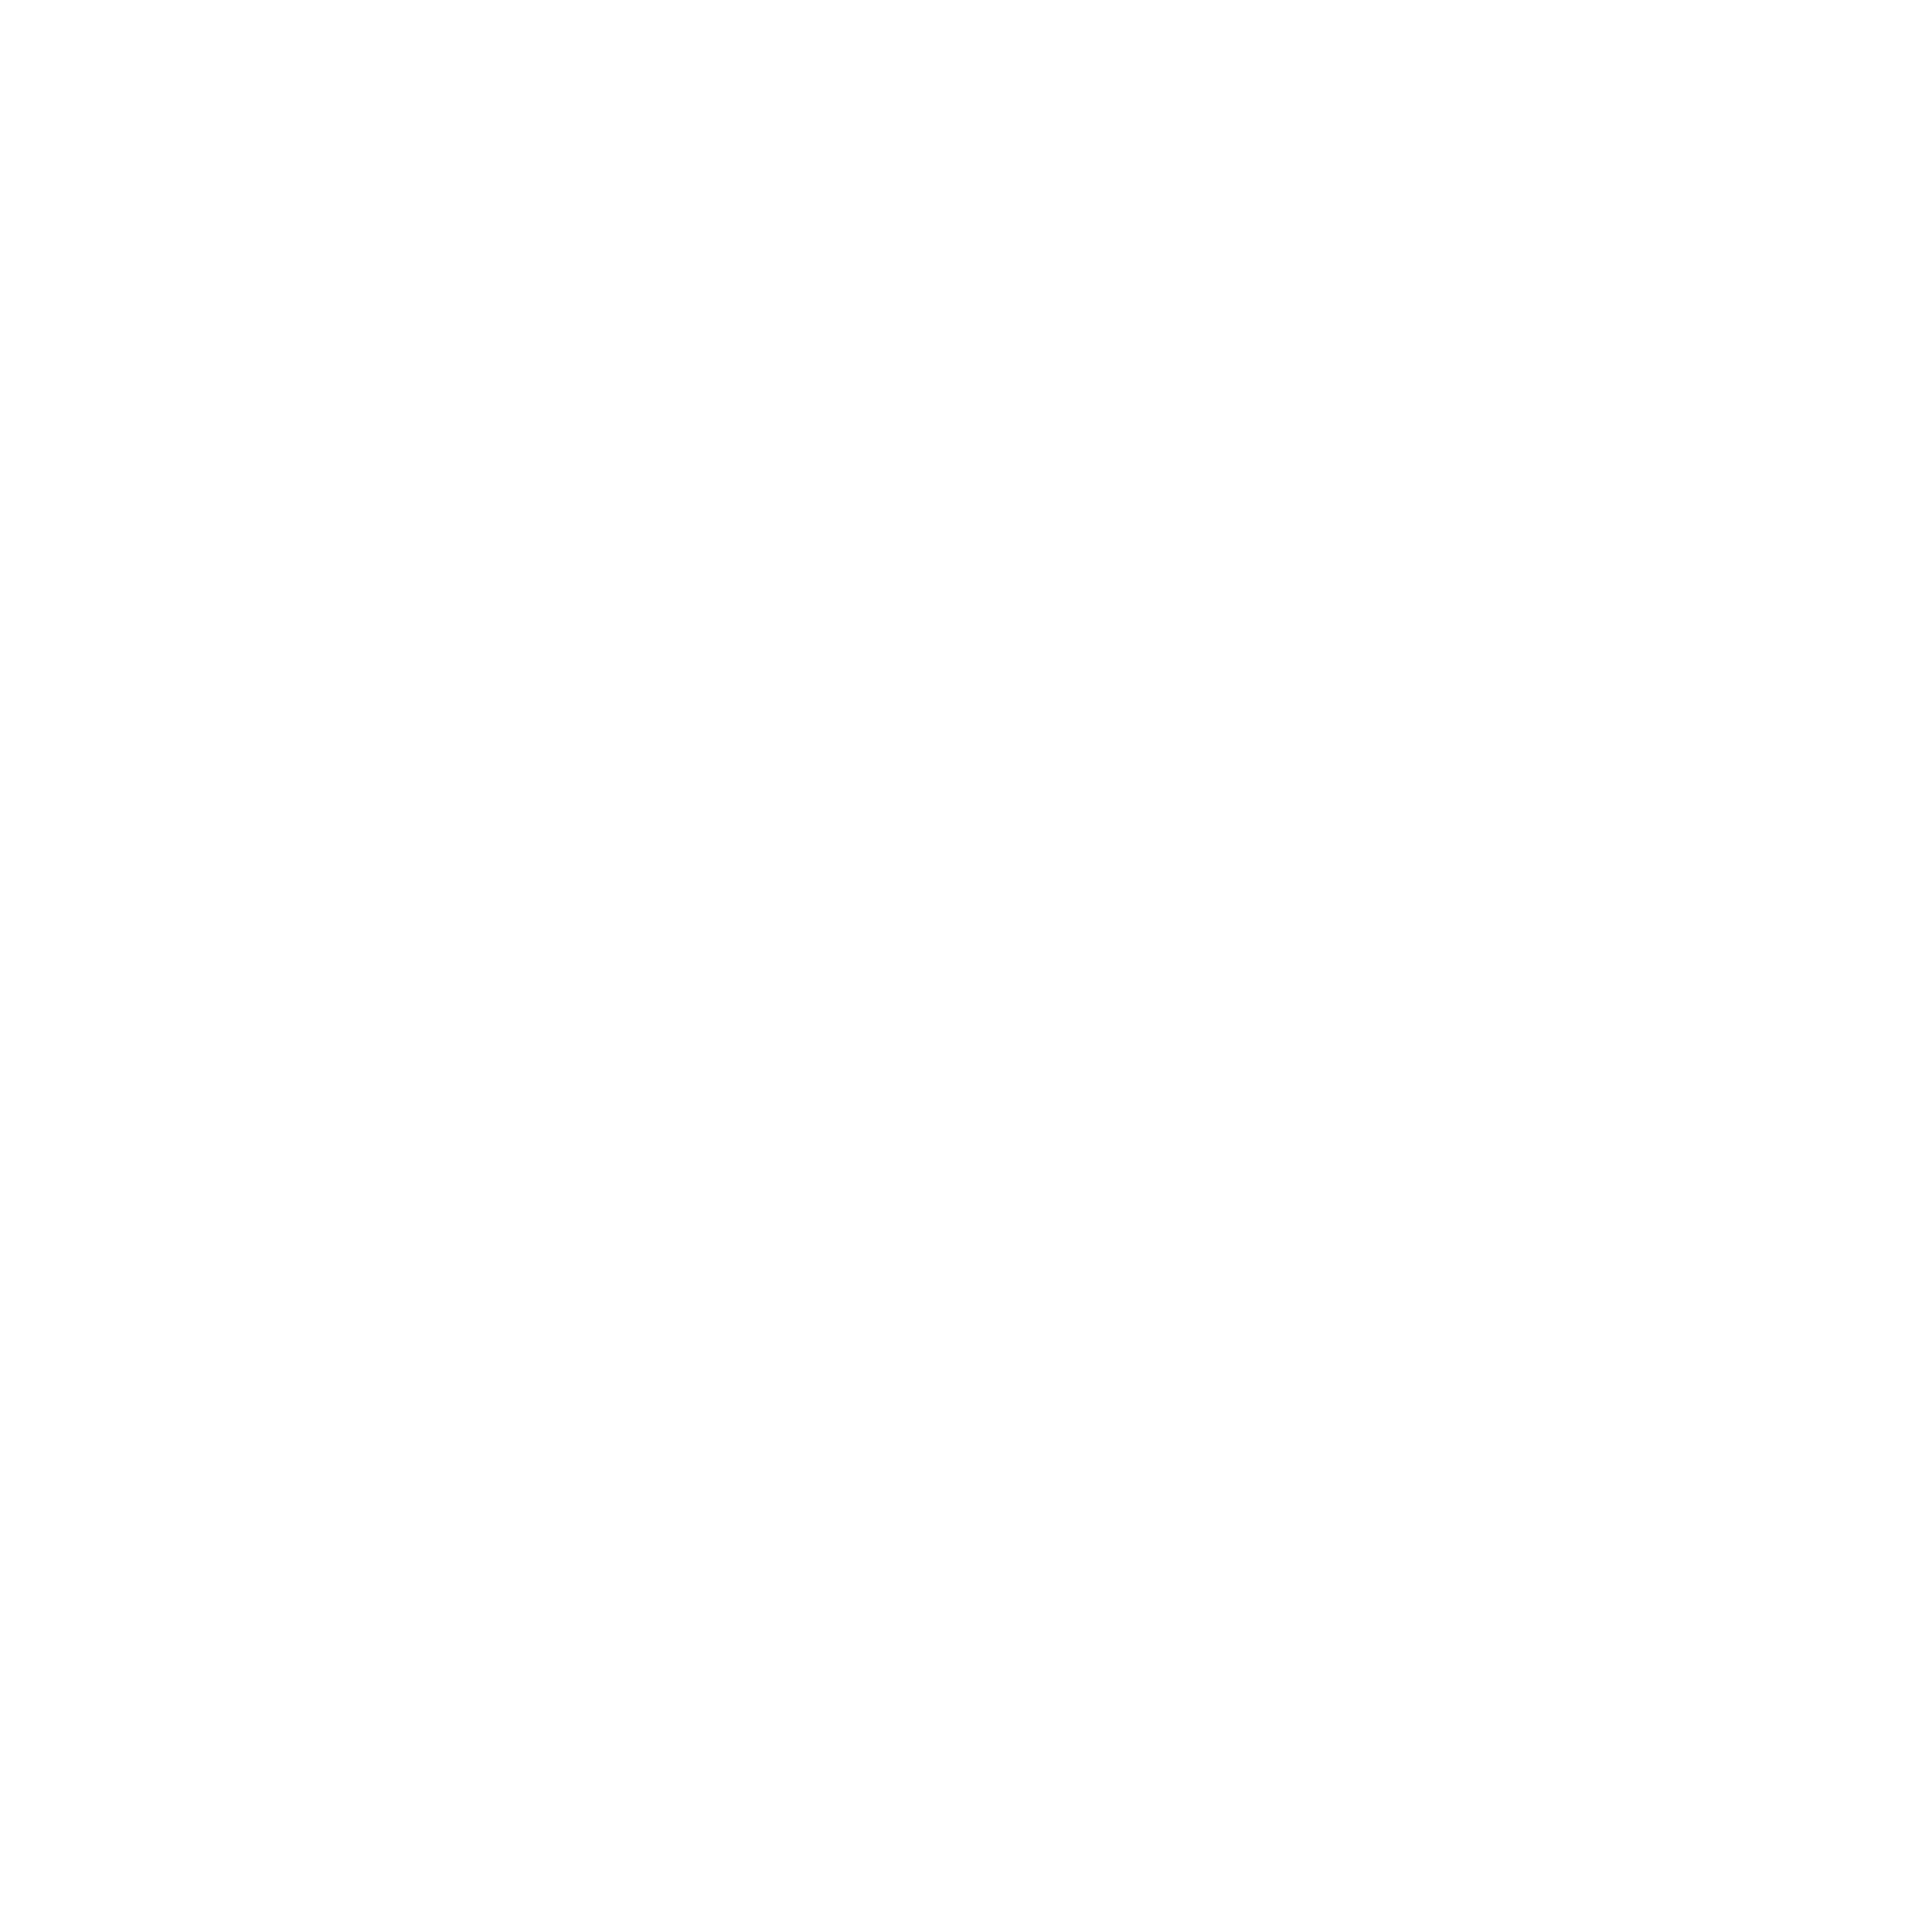 OS.Troubleshooting (1).png